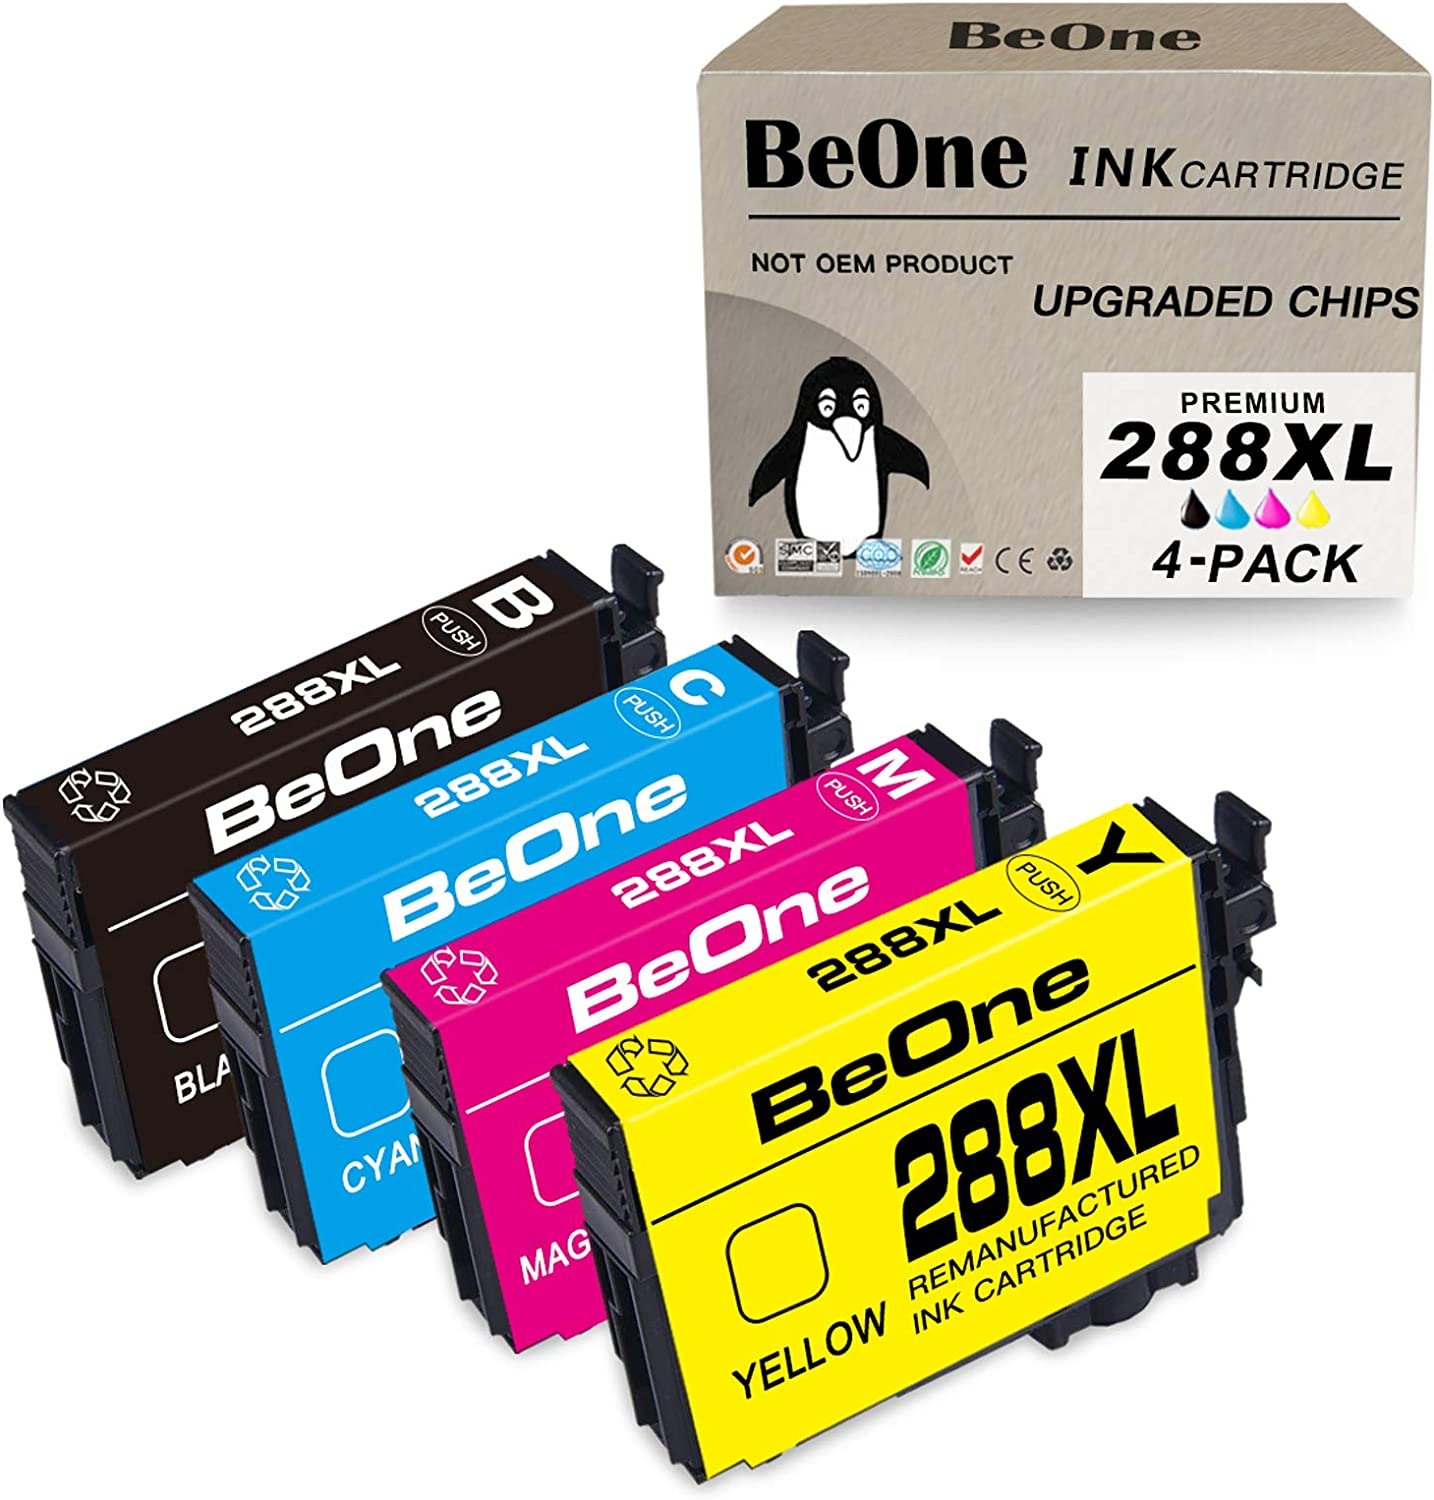 BeOne Remanufactured Ink Cartridge Replacement for Epson 288 XL 288XL T288 T288XL 4-Pack to Use with Expression Home XP-440 XP-340 XP-446 XP-330 XP-430 XP-434 Printer (Black Cyan Magenta Yellow)